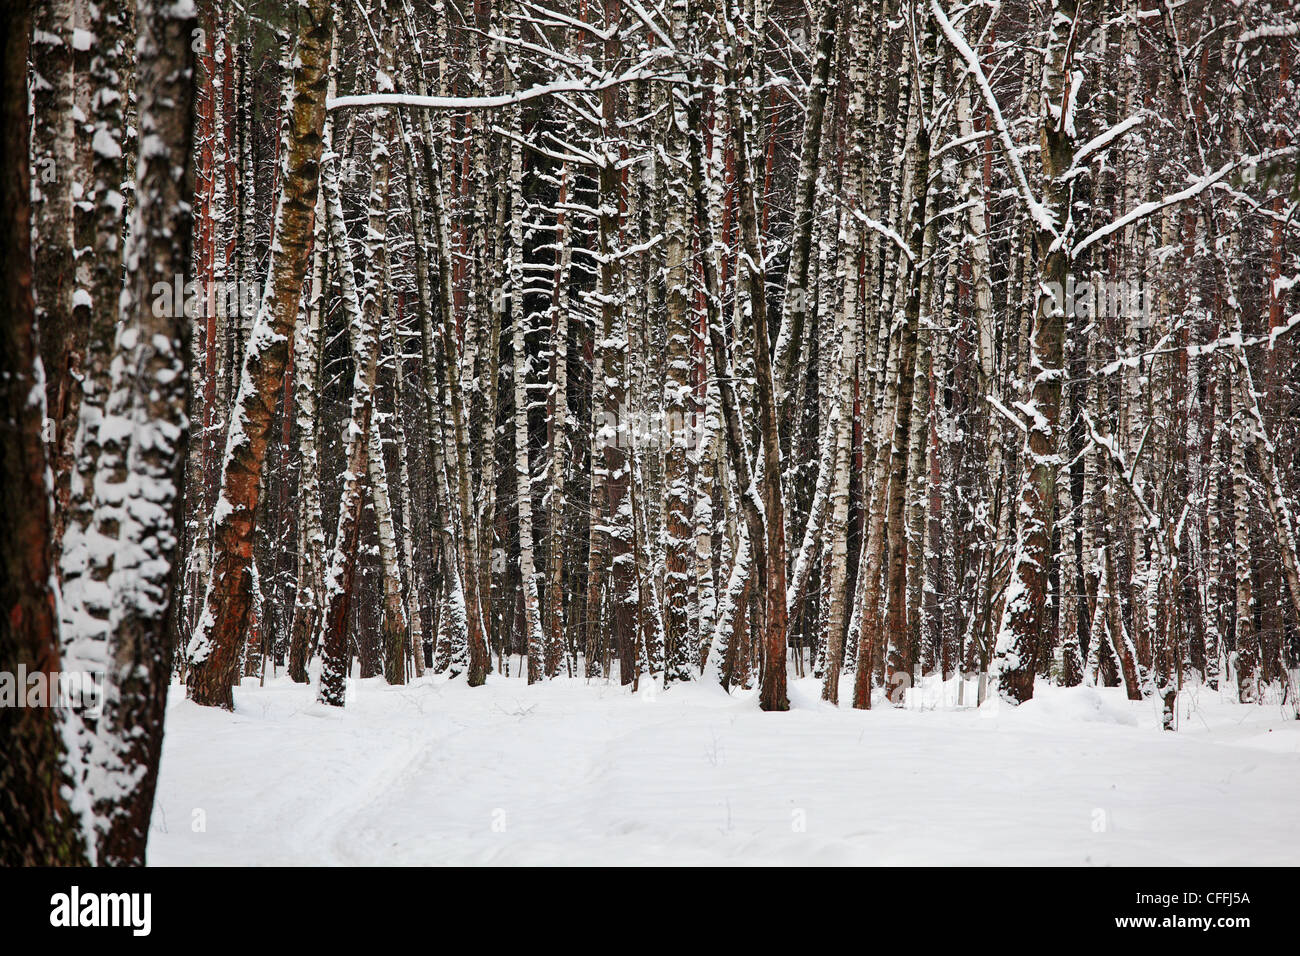 Winter forest. - Stock Image